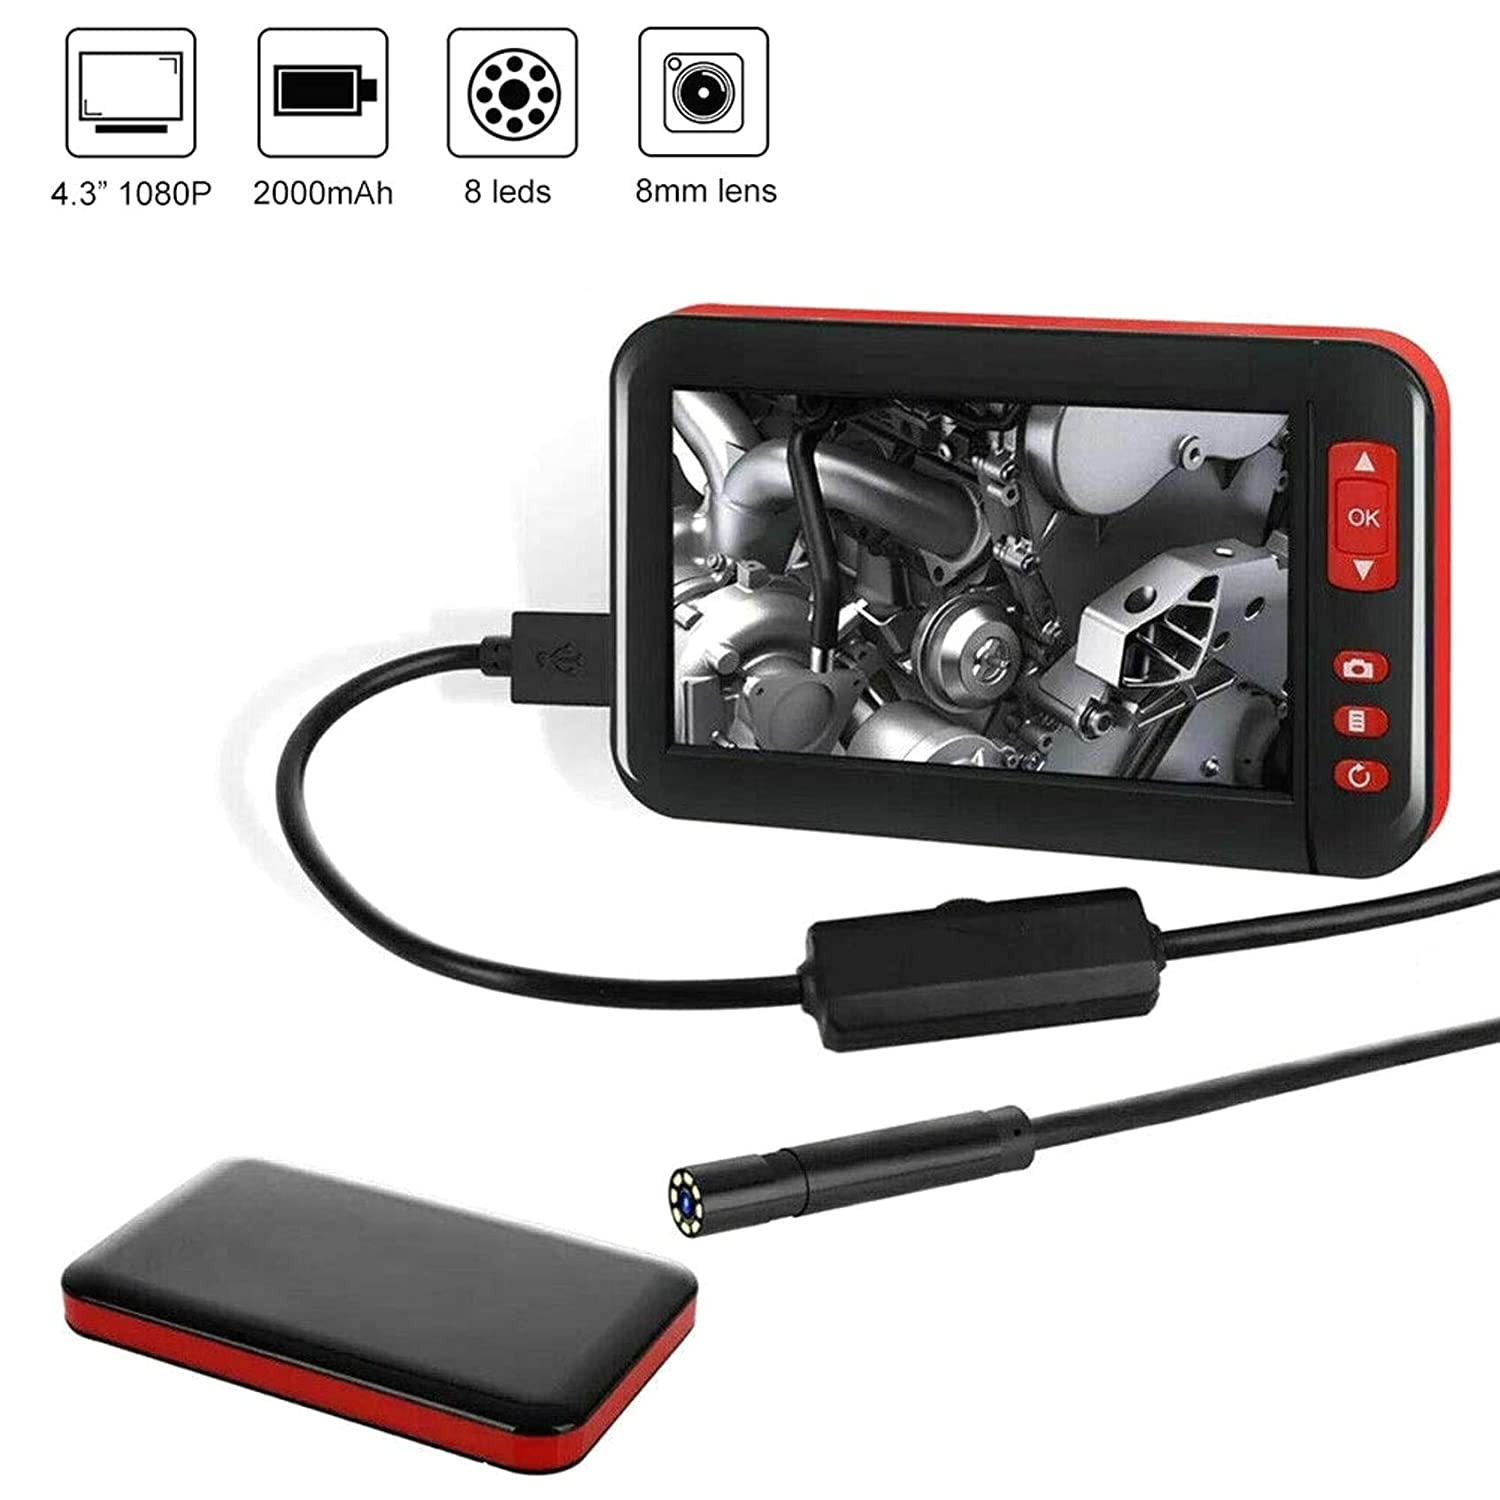 Endoscope Waterproof Video Inspection Camera  Colour LCD Monitor Lens mount LED